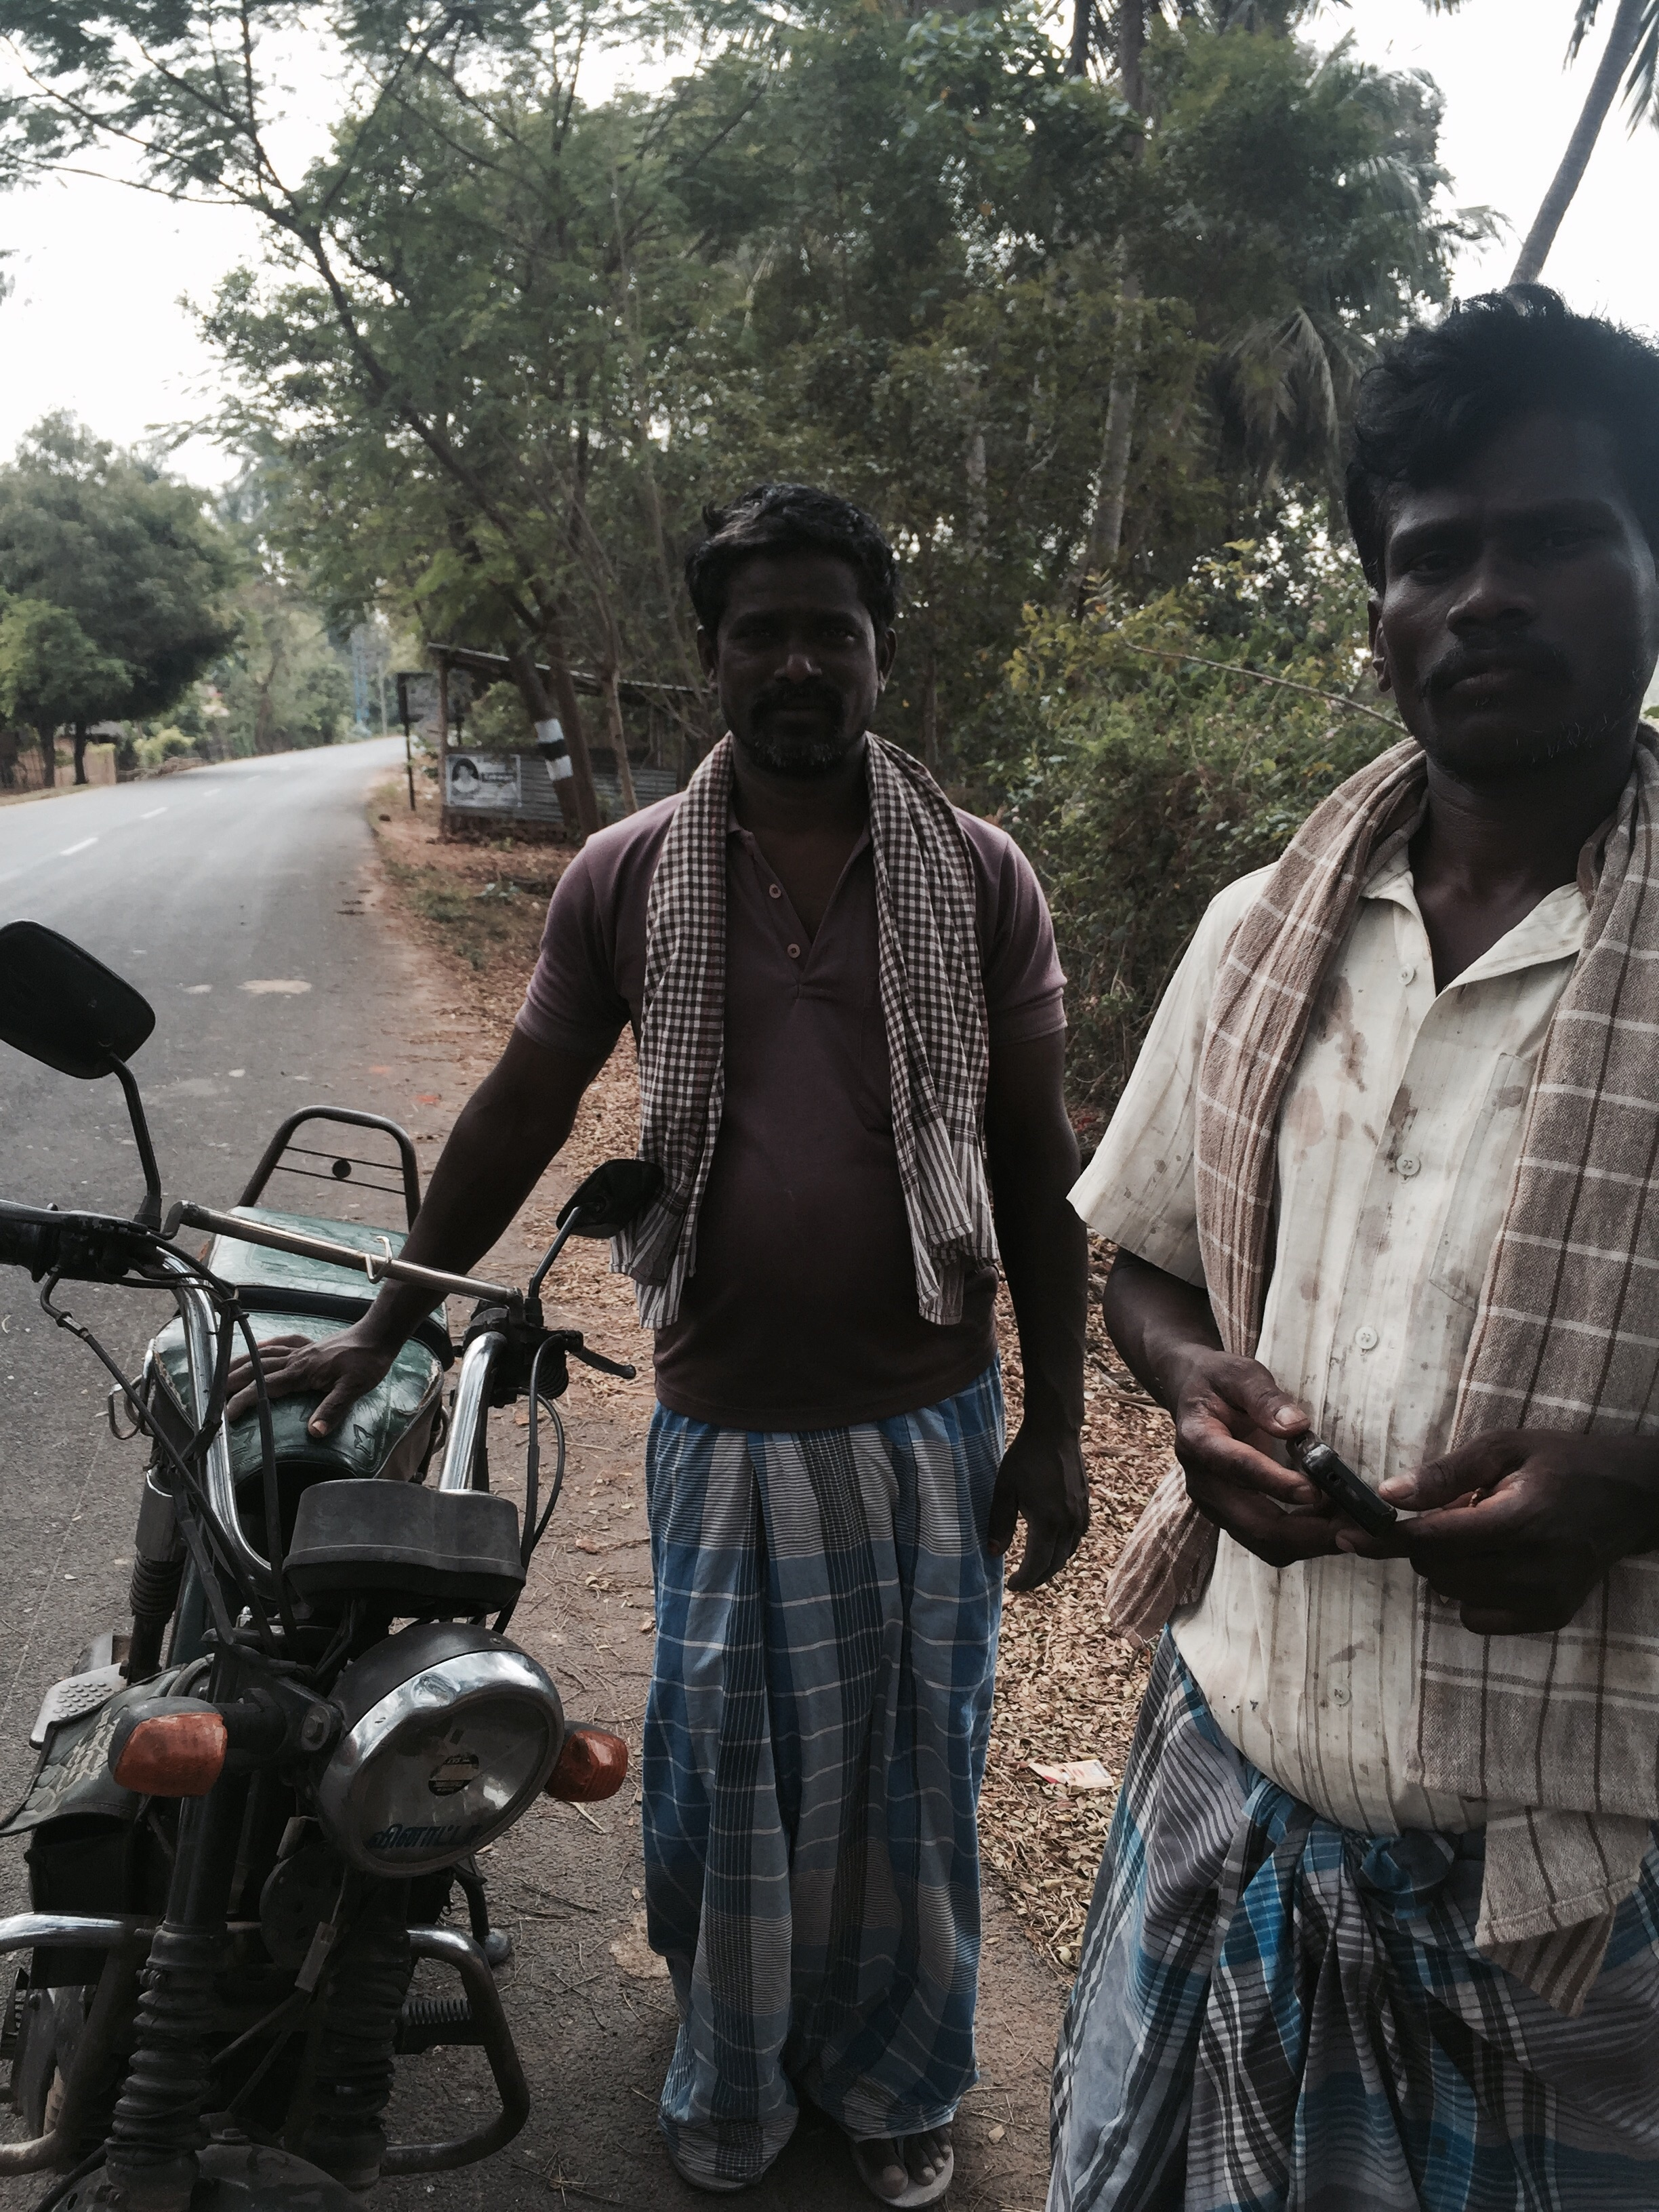 The man holding the motorbike is the guy who delivered me the goods!